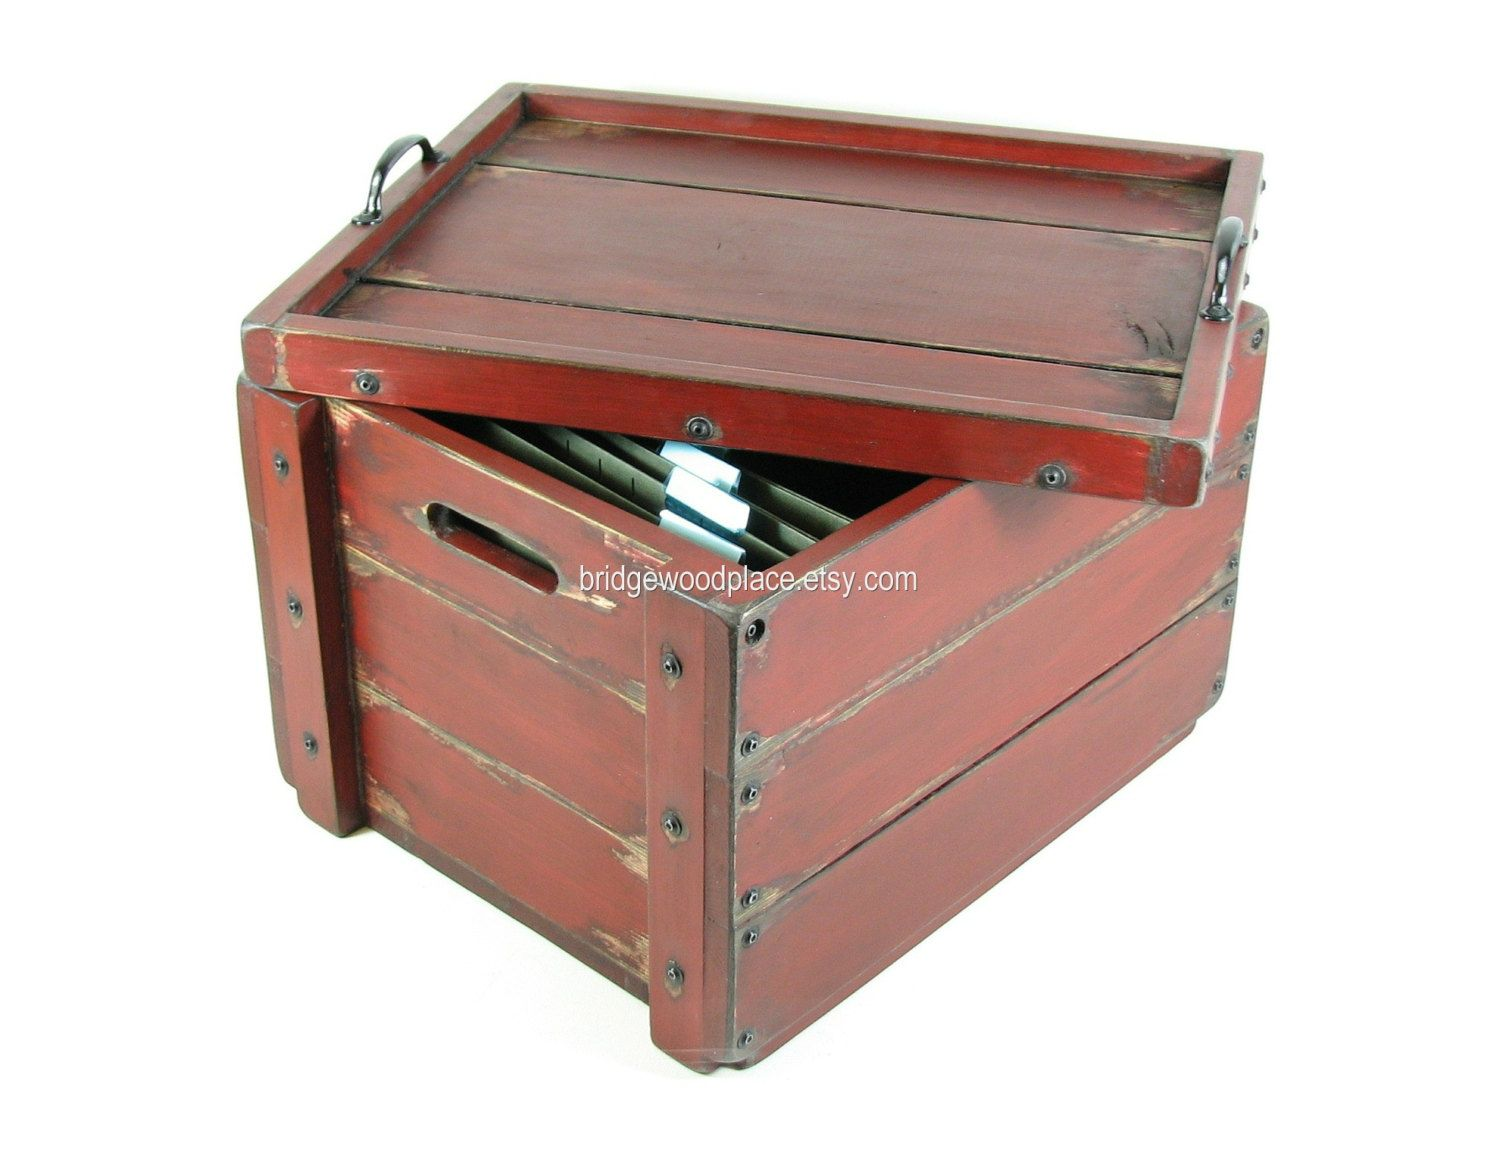 Wooden Crate Furniture Table Rustic Wood Filing Box